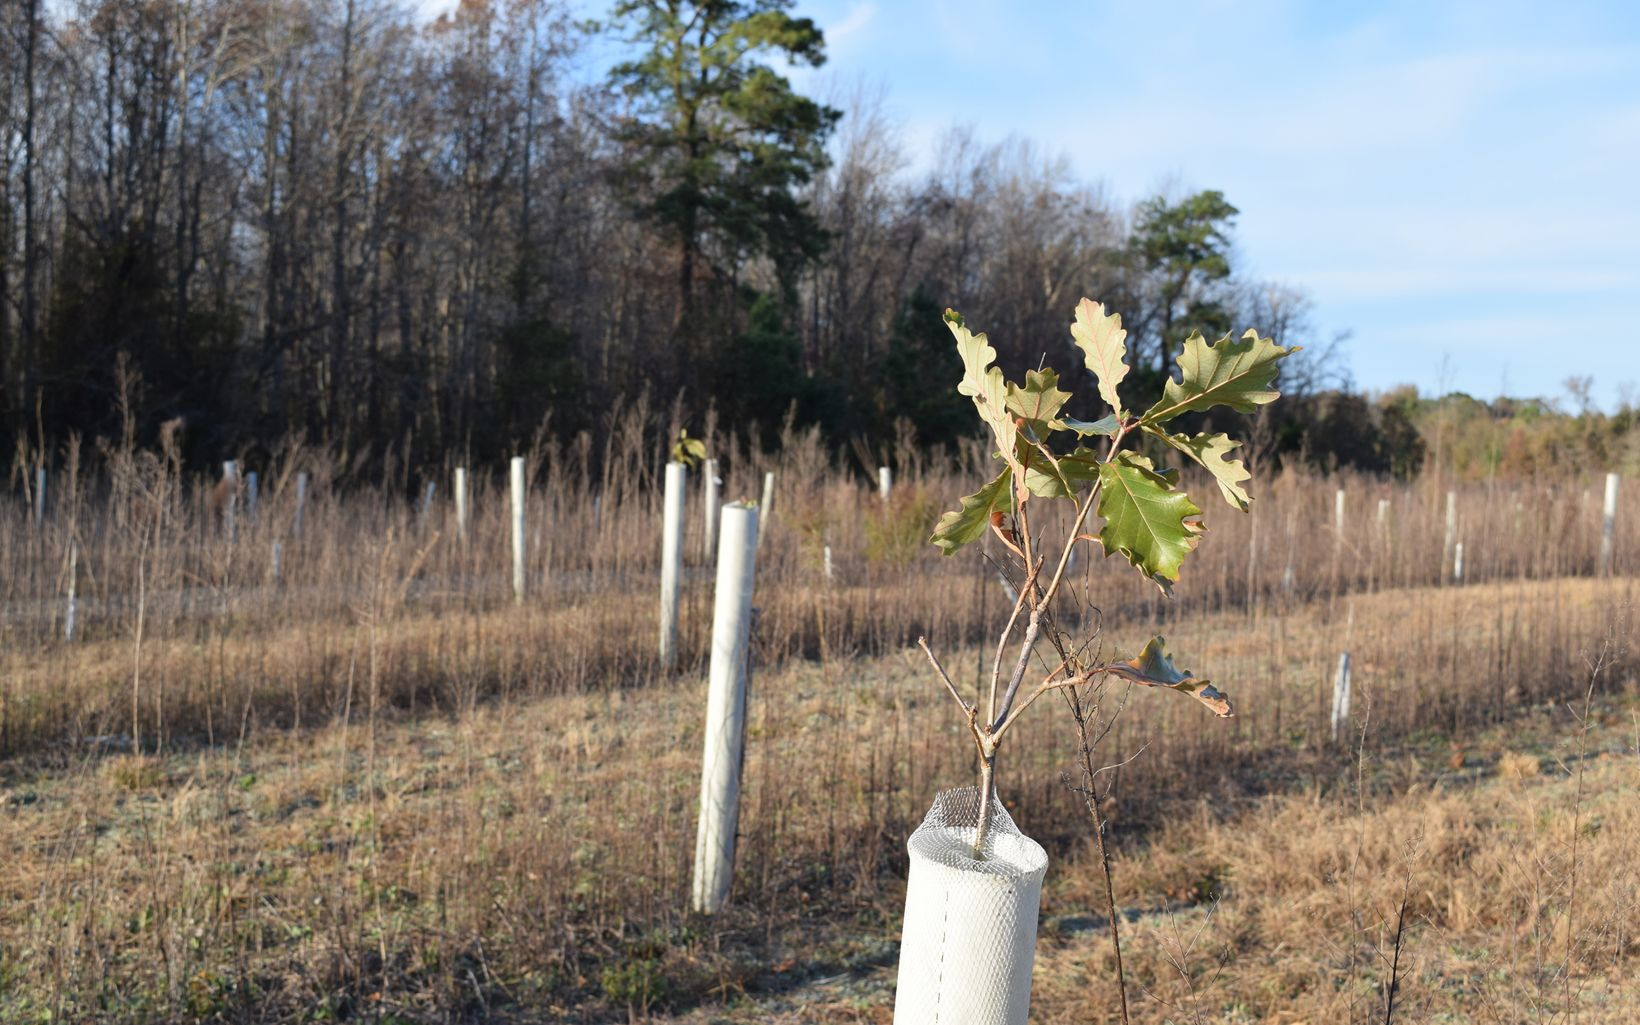 Rows of tall white plastic tubes fill an open field. Leaves on thin branches poke up through the tops of the tubes.